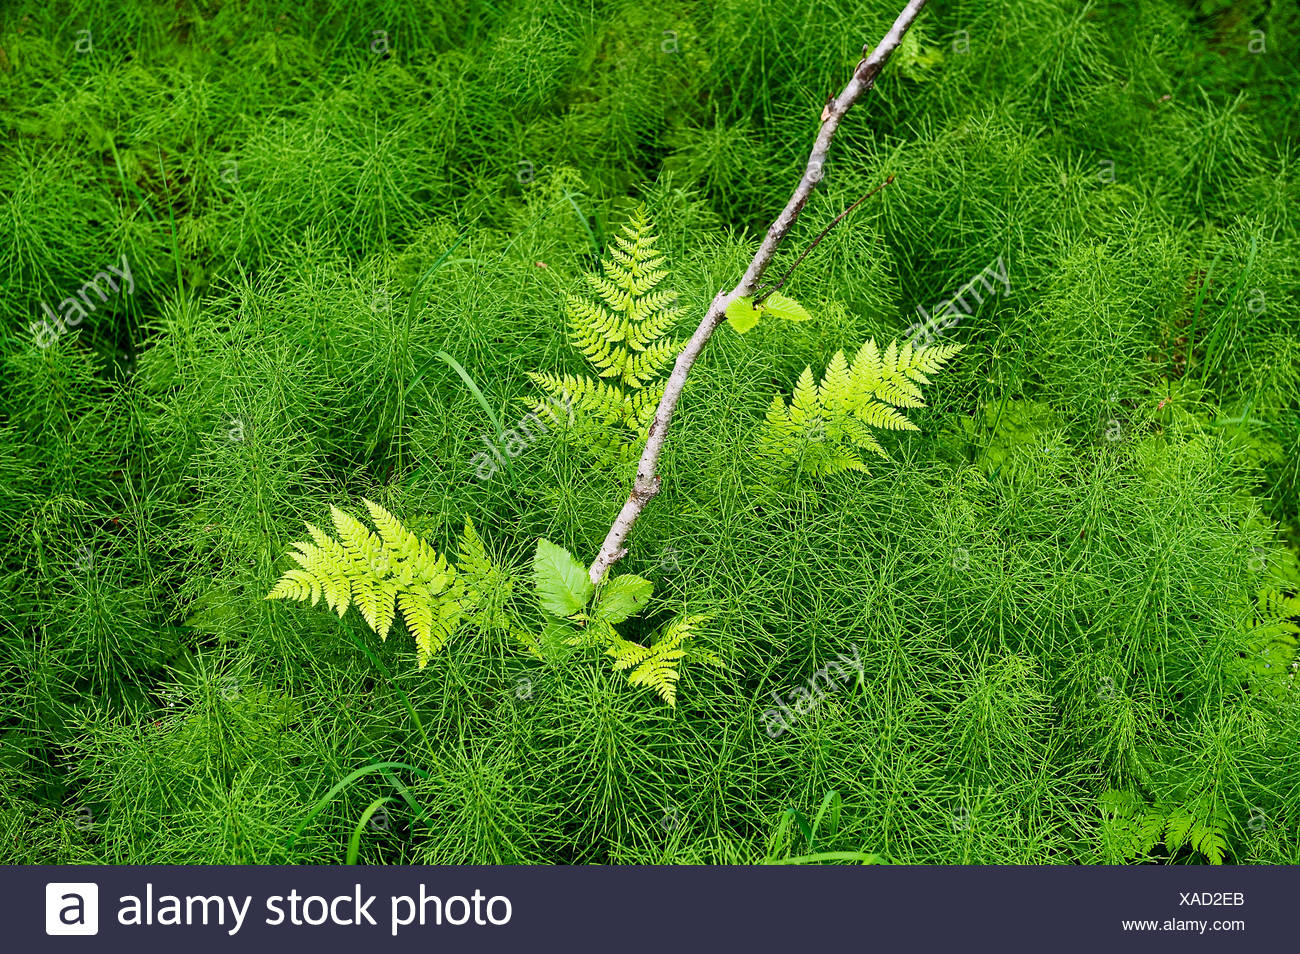 Fern and green undergrowth on the forest floor, Chugach National Forest, Alaska, USA - Stock Image